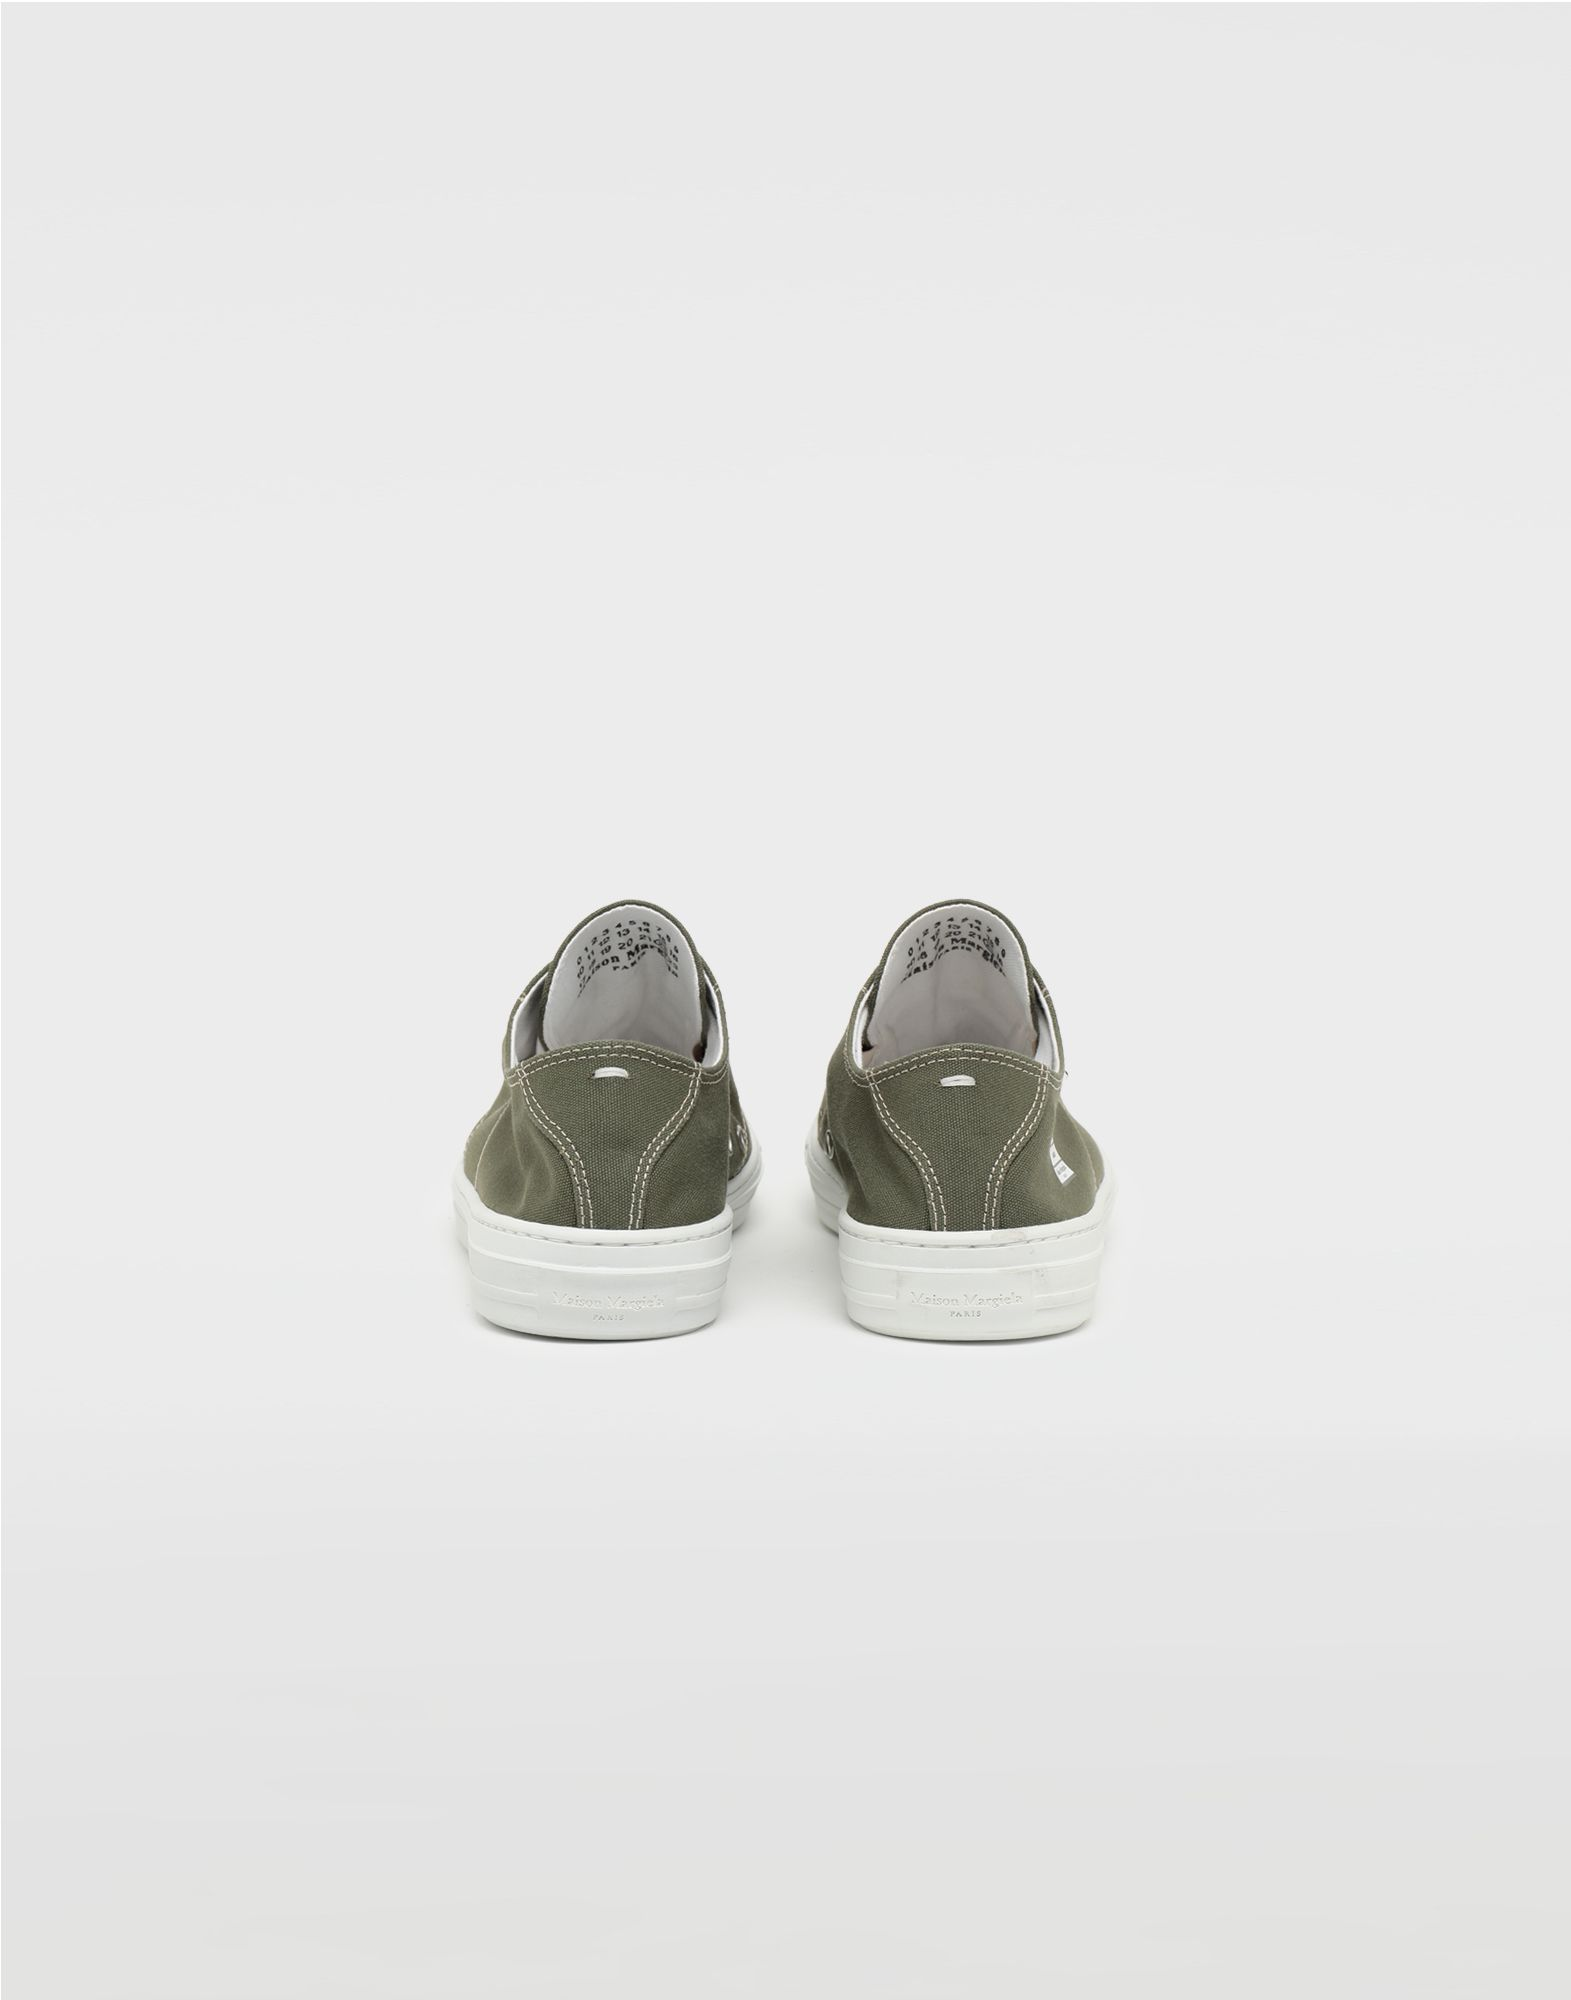 MAISON MARGIELA Stereotype low top sneakers Sneakers Man d